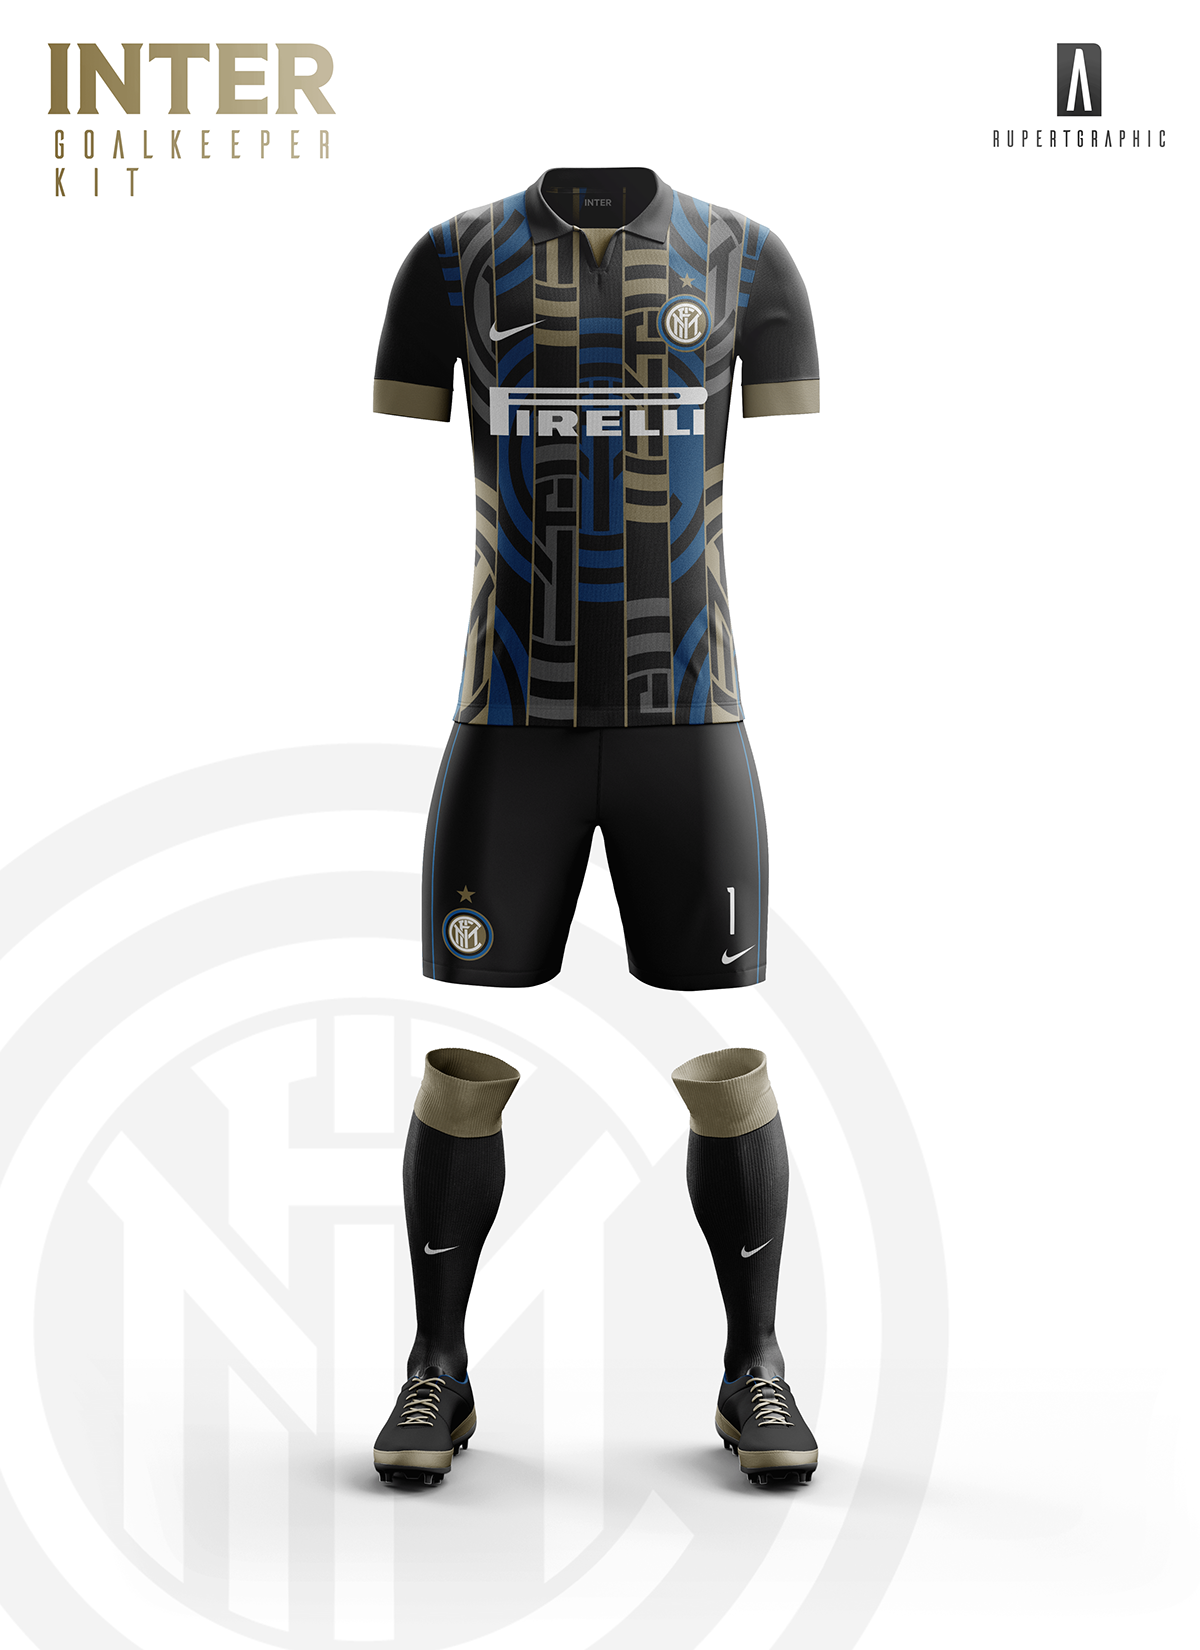 0801ce3137 FC Internazionale Goalkeeper Kit 2016-17